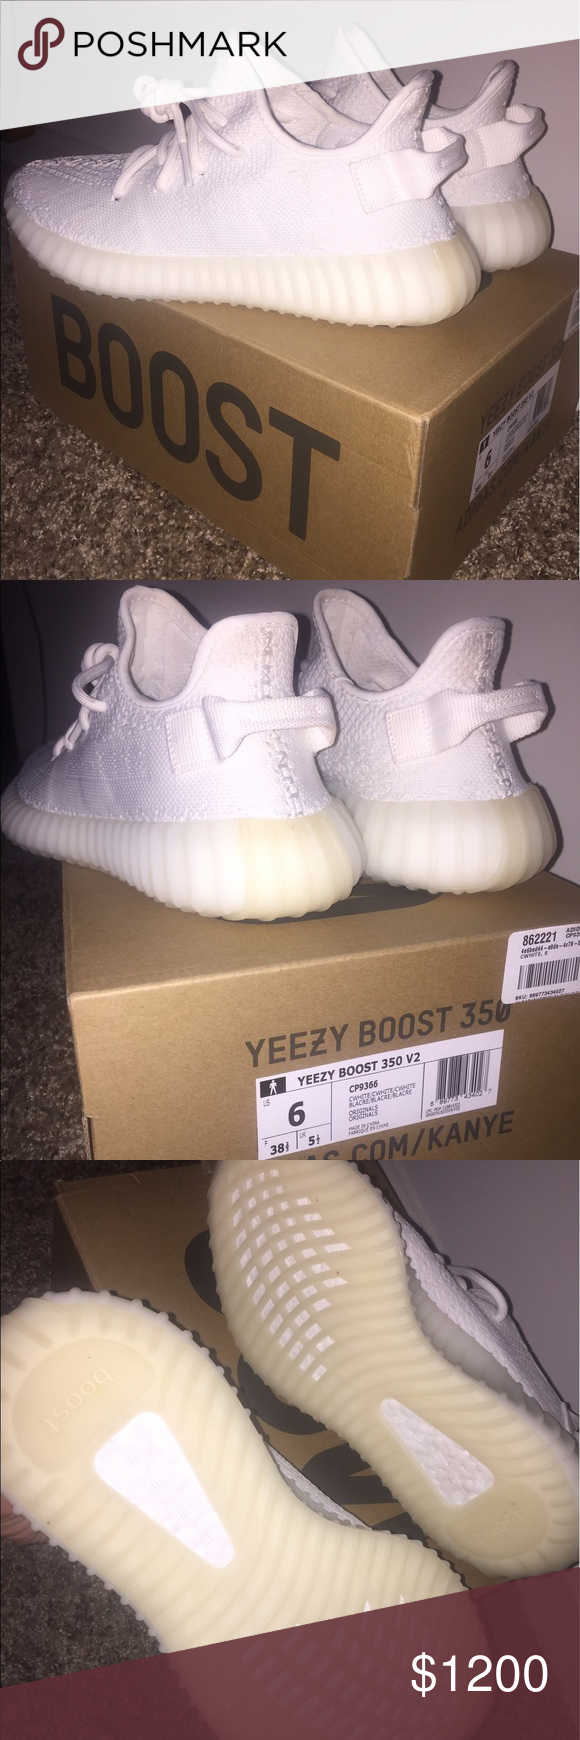 Yeezy Shoes Sneakers